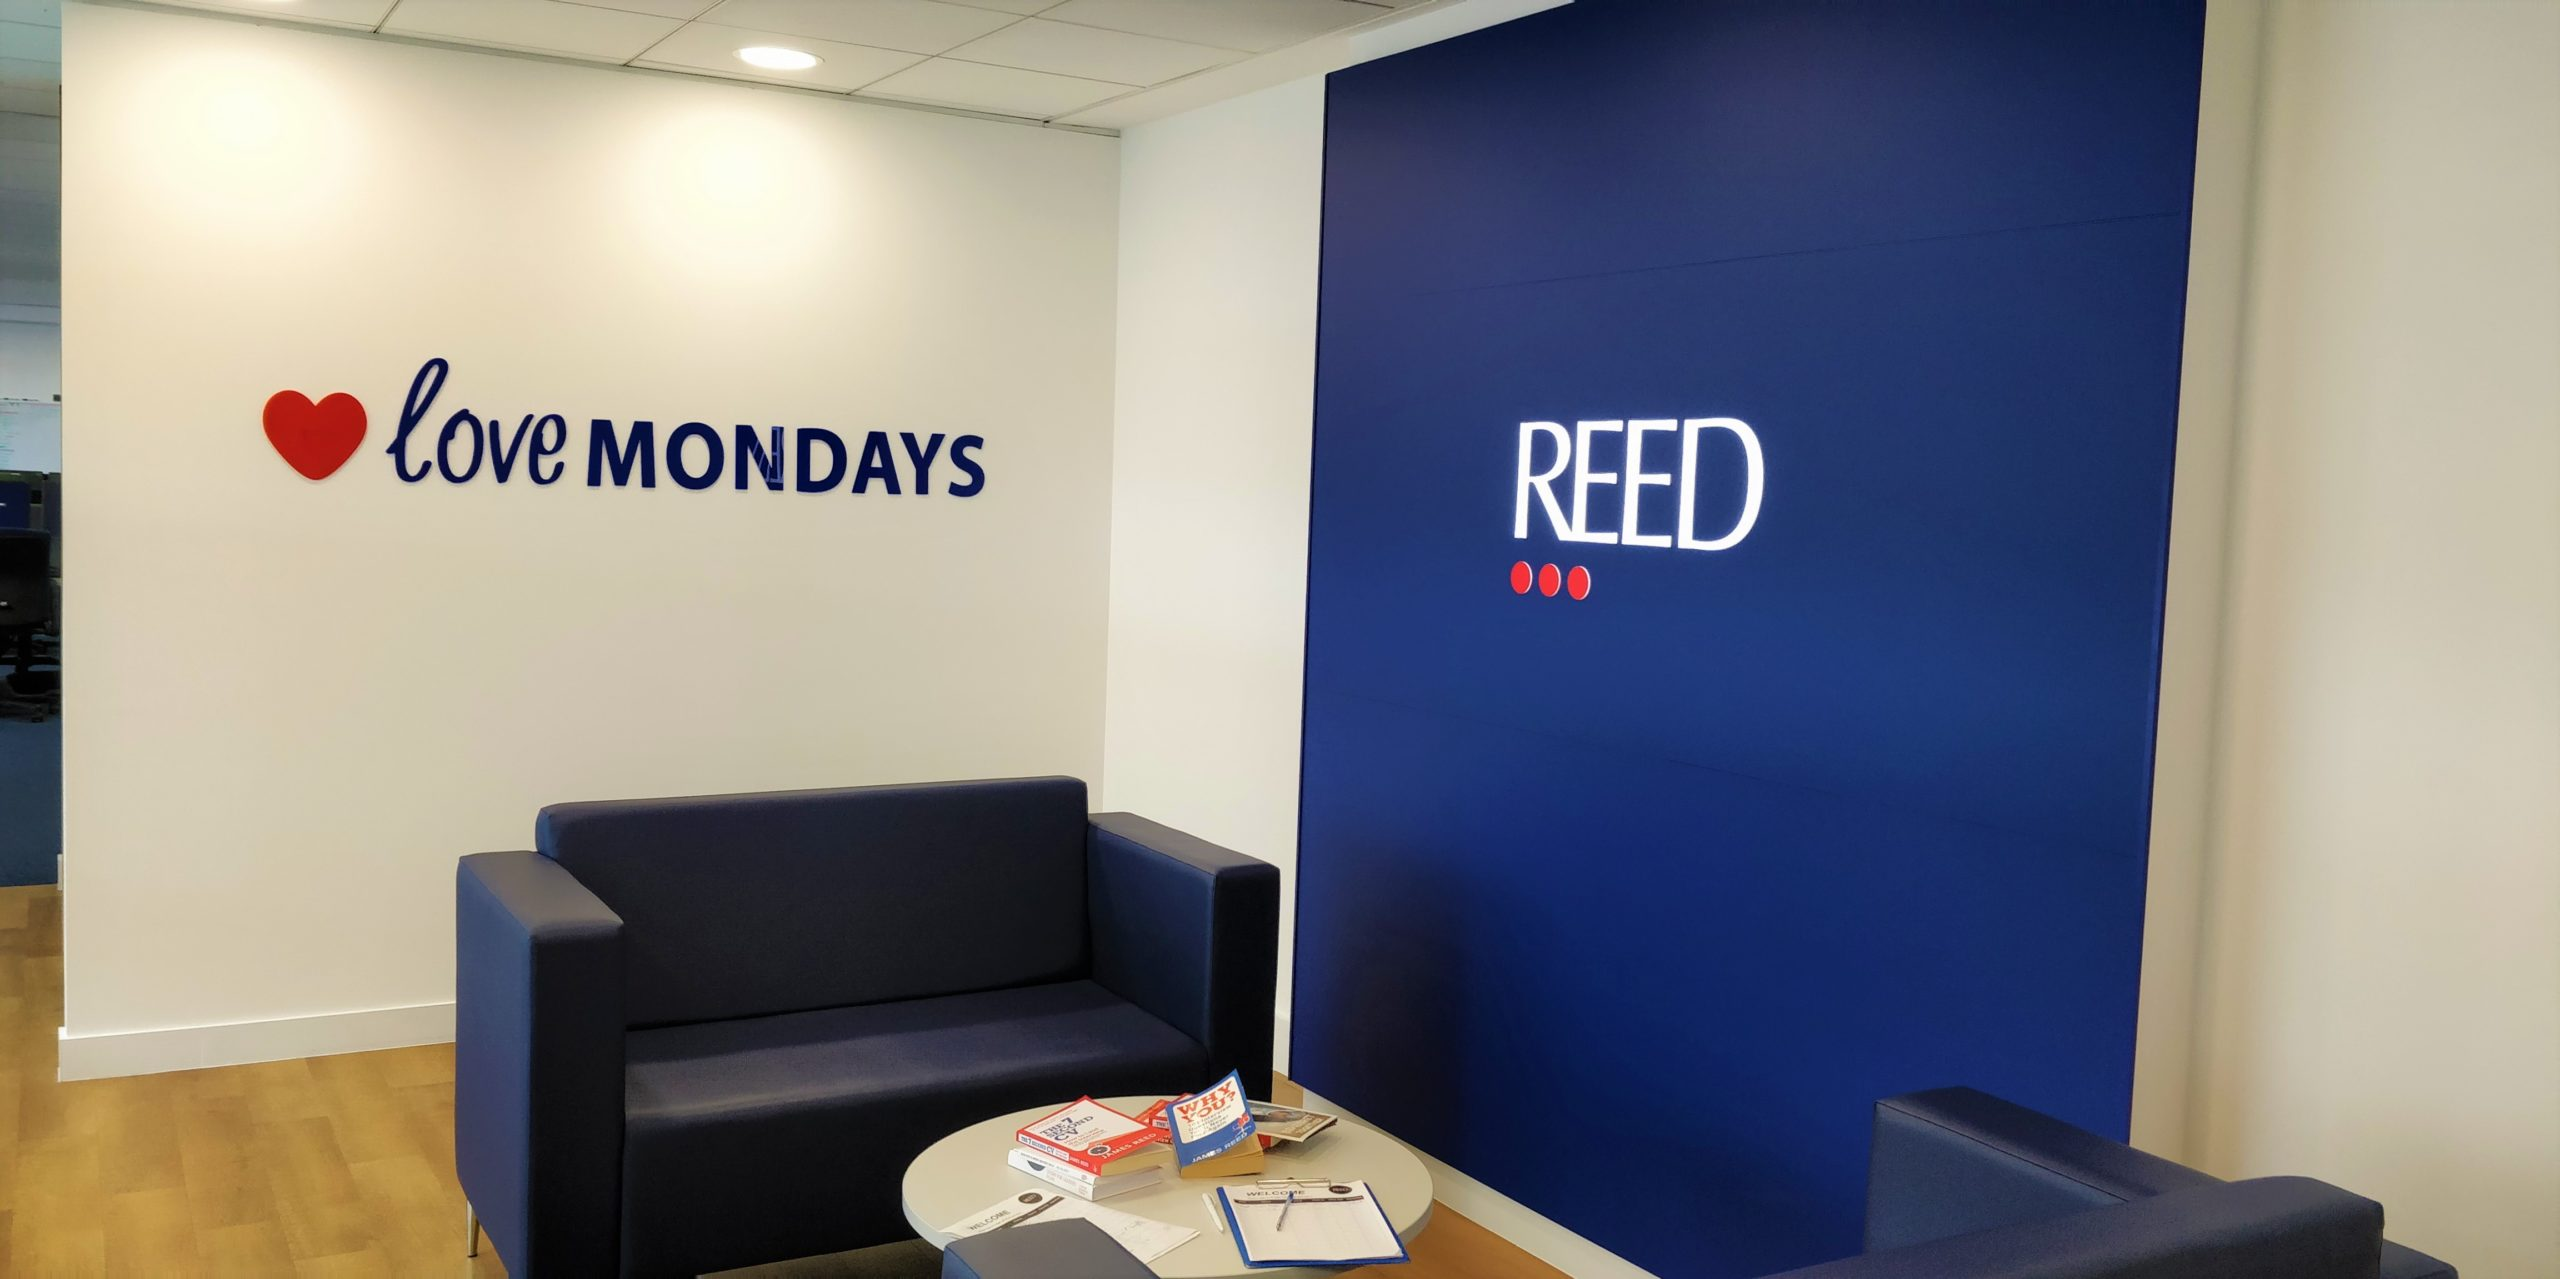 Reed Oxford reception area (present day)